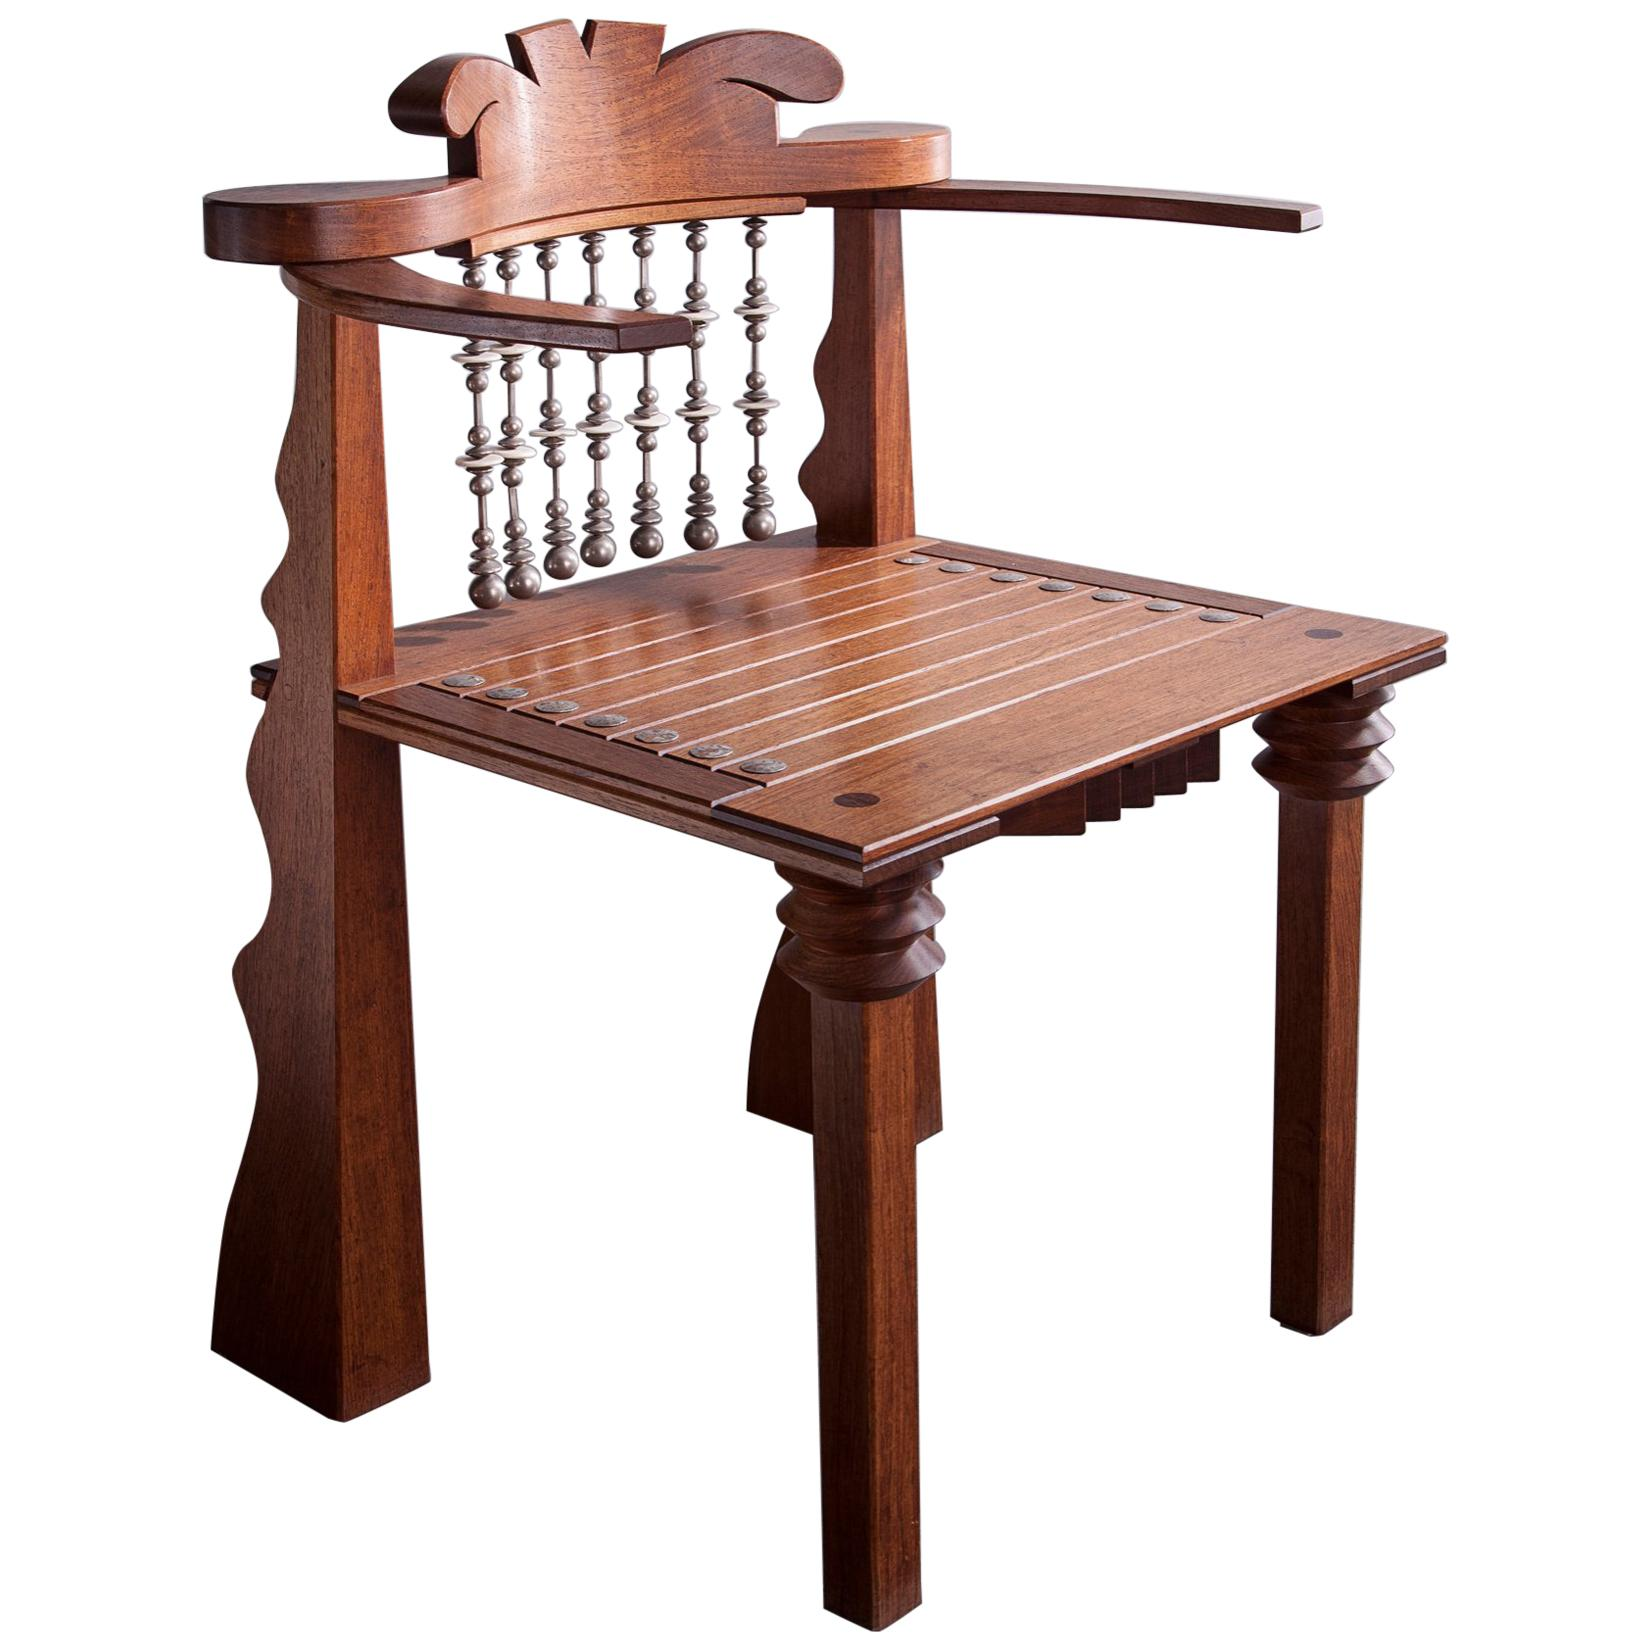 African Chair in Claro Walnut and Beads by Garry Knox Bennett, 1988